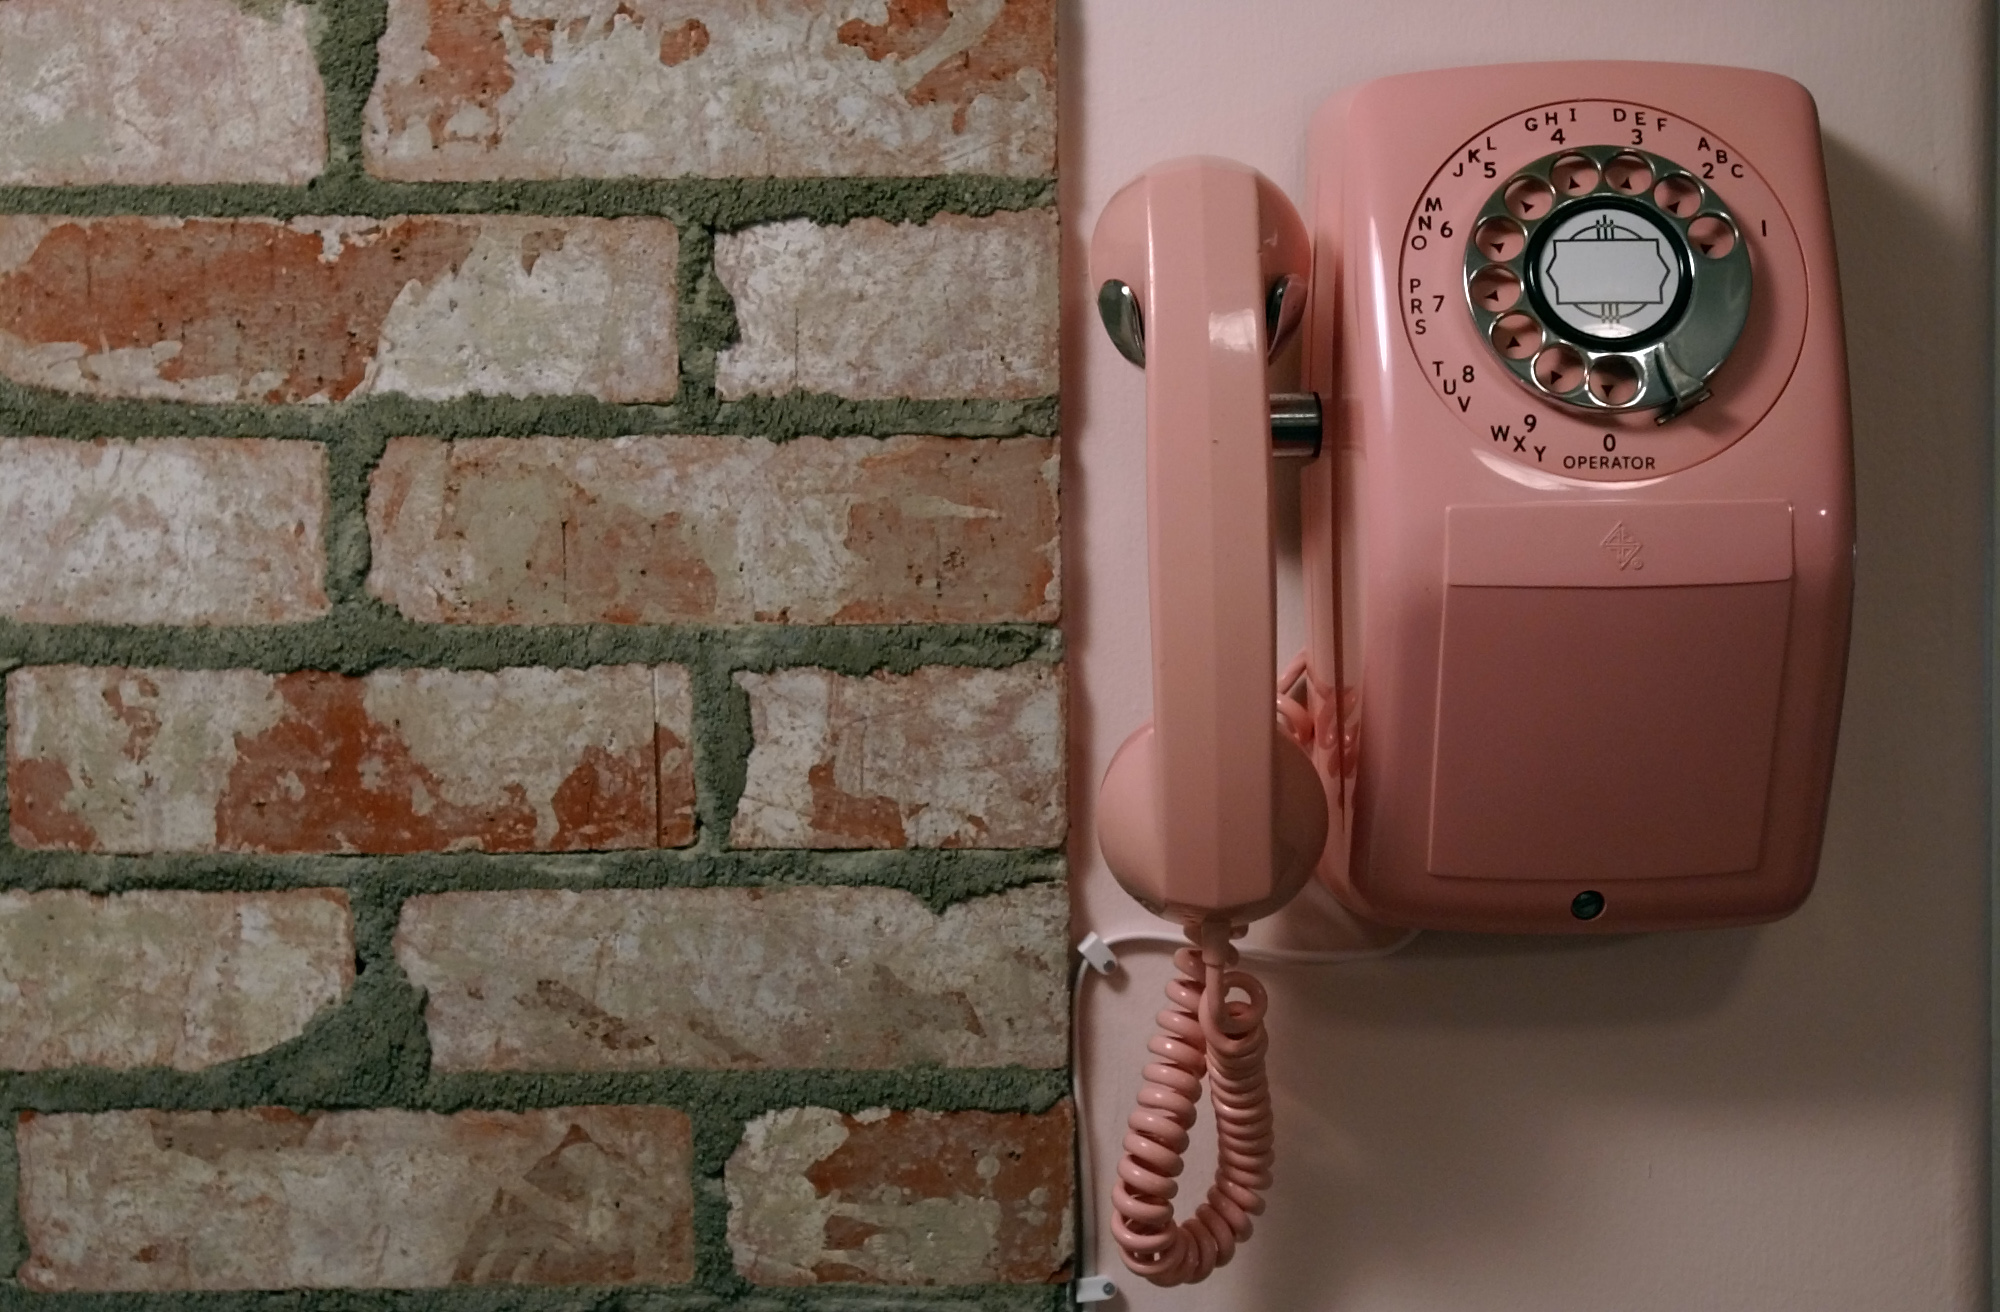 Brick tiles and a rotary phone add to the 50s farmhouse kitchen feel at the Van De Yacht's home in N